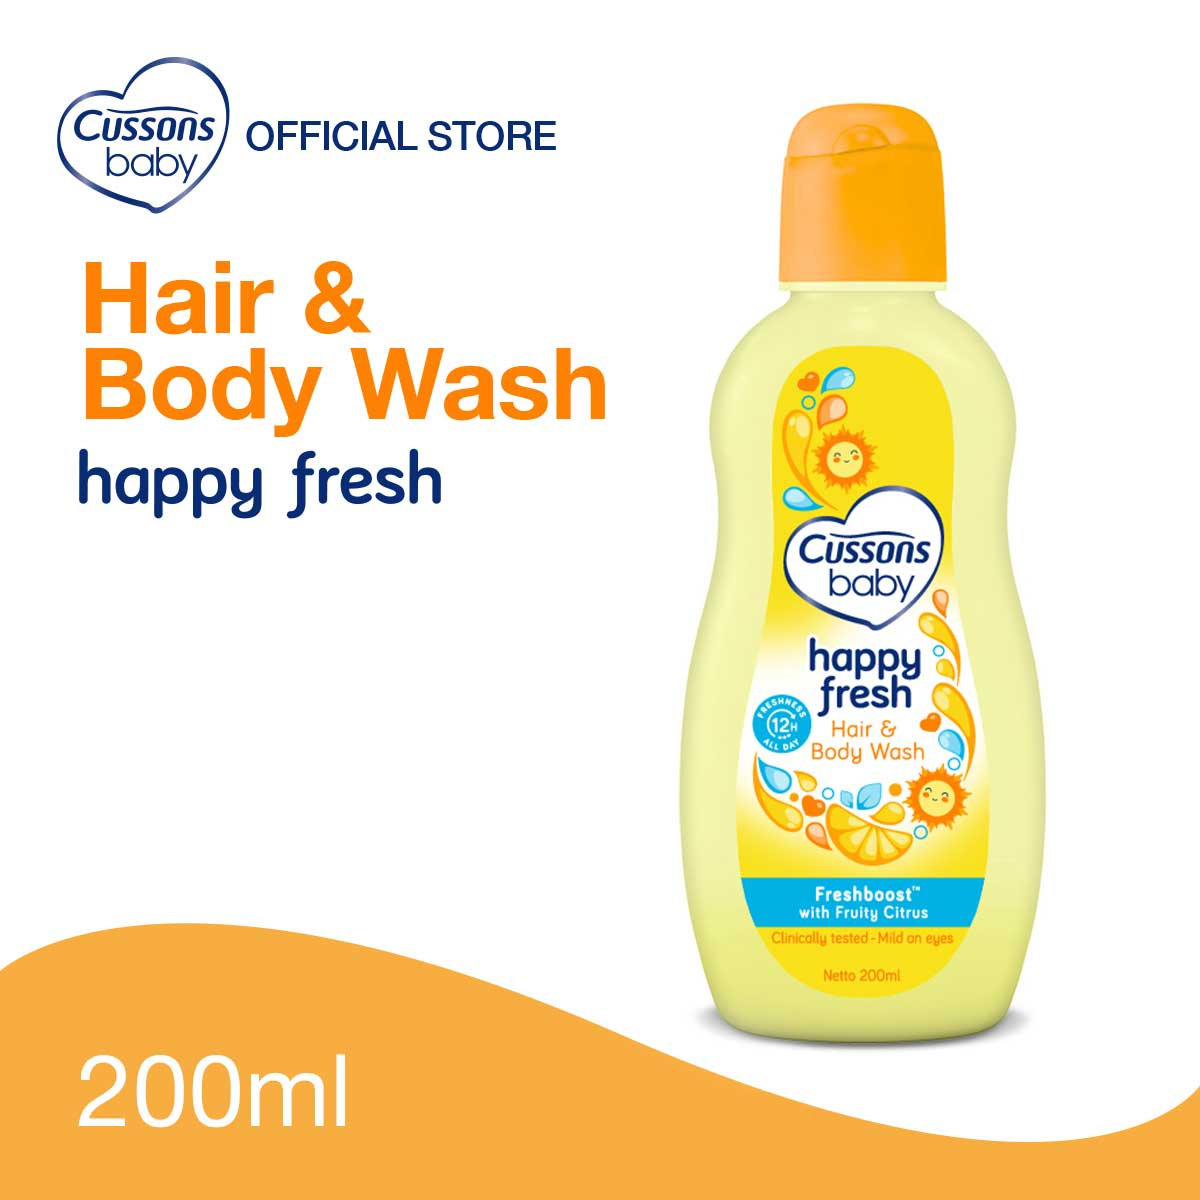 Cussons Baby Happy Fresh Hair & Body Wash 200ml